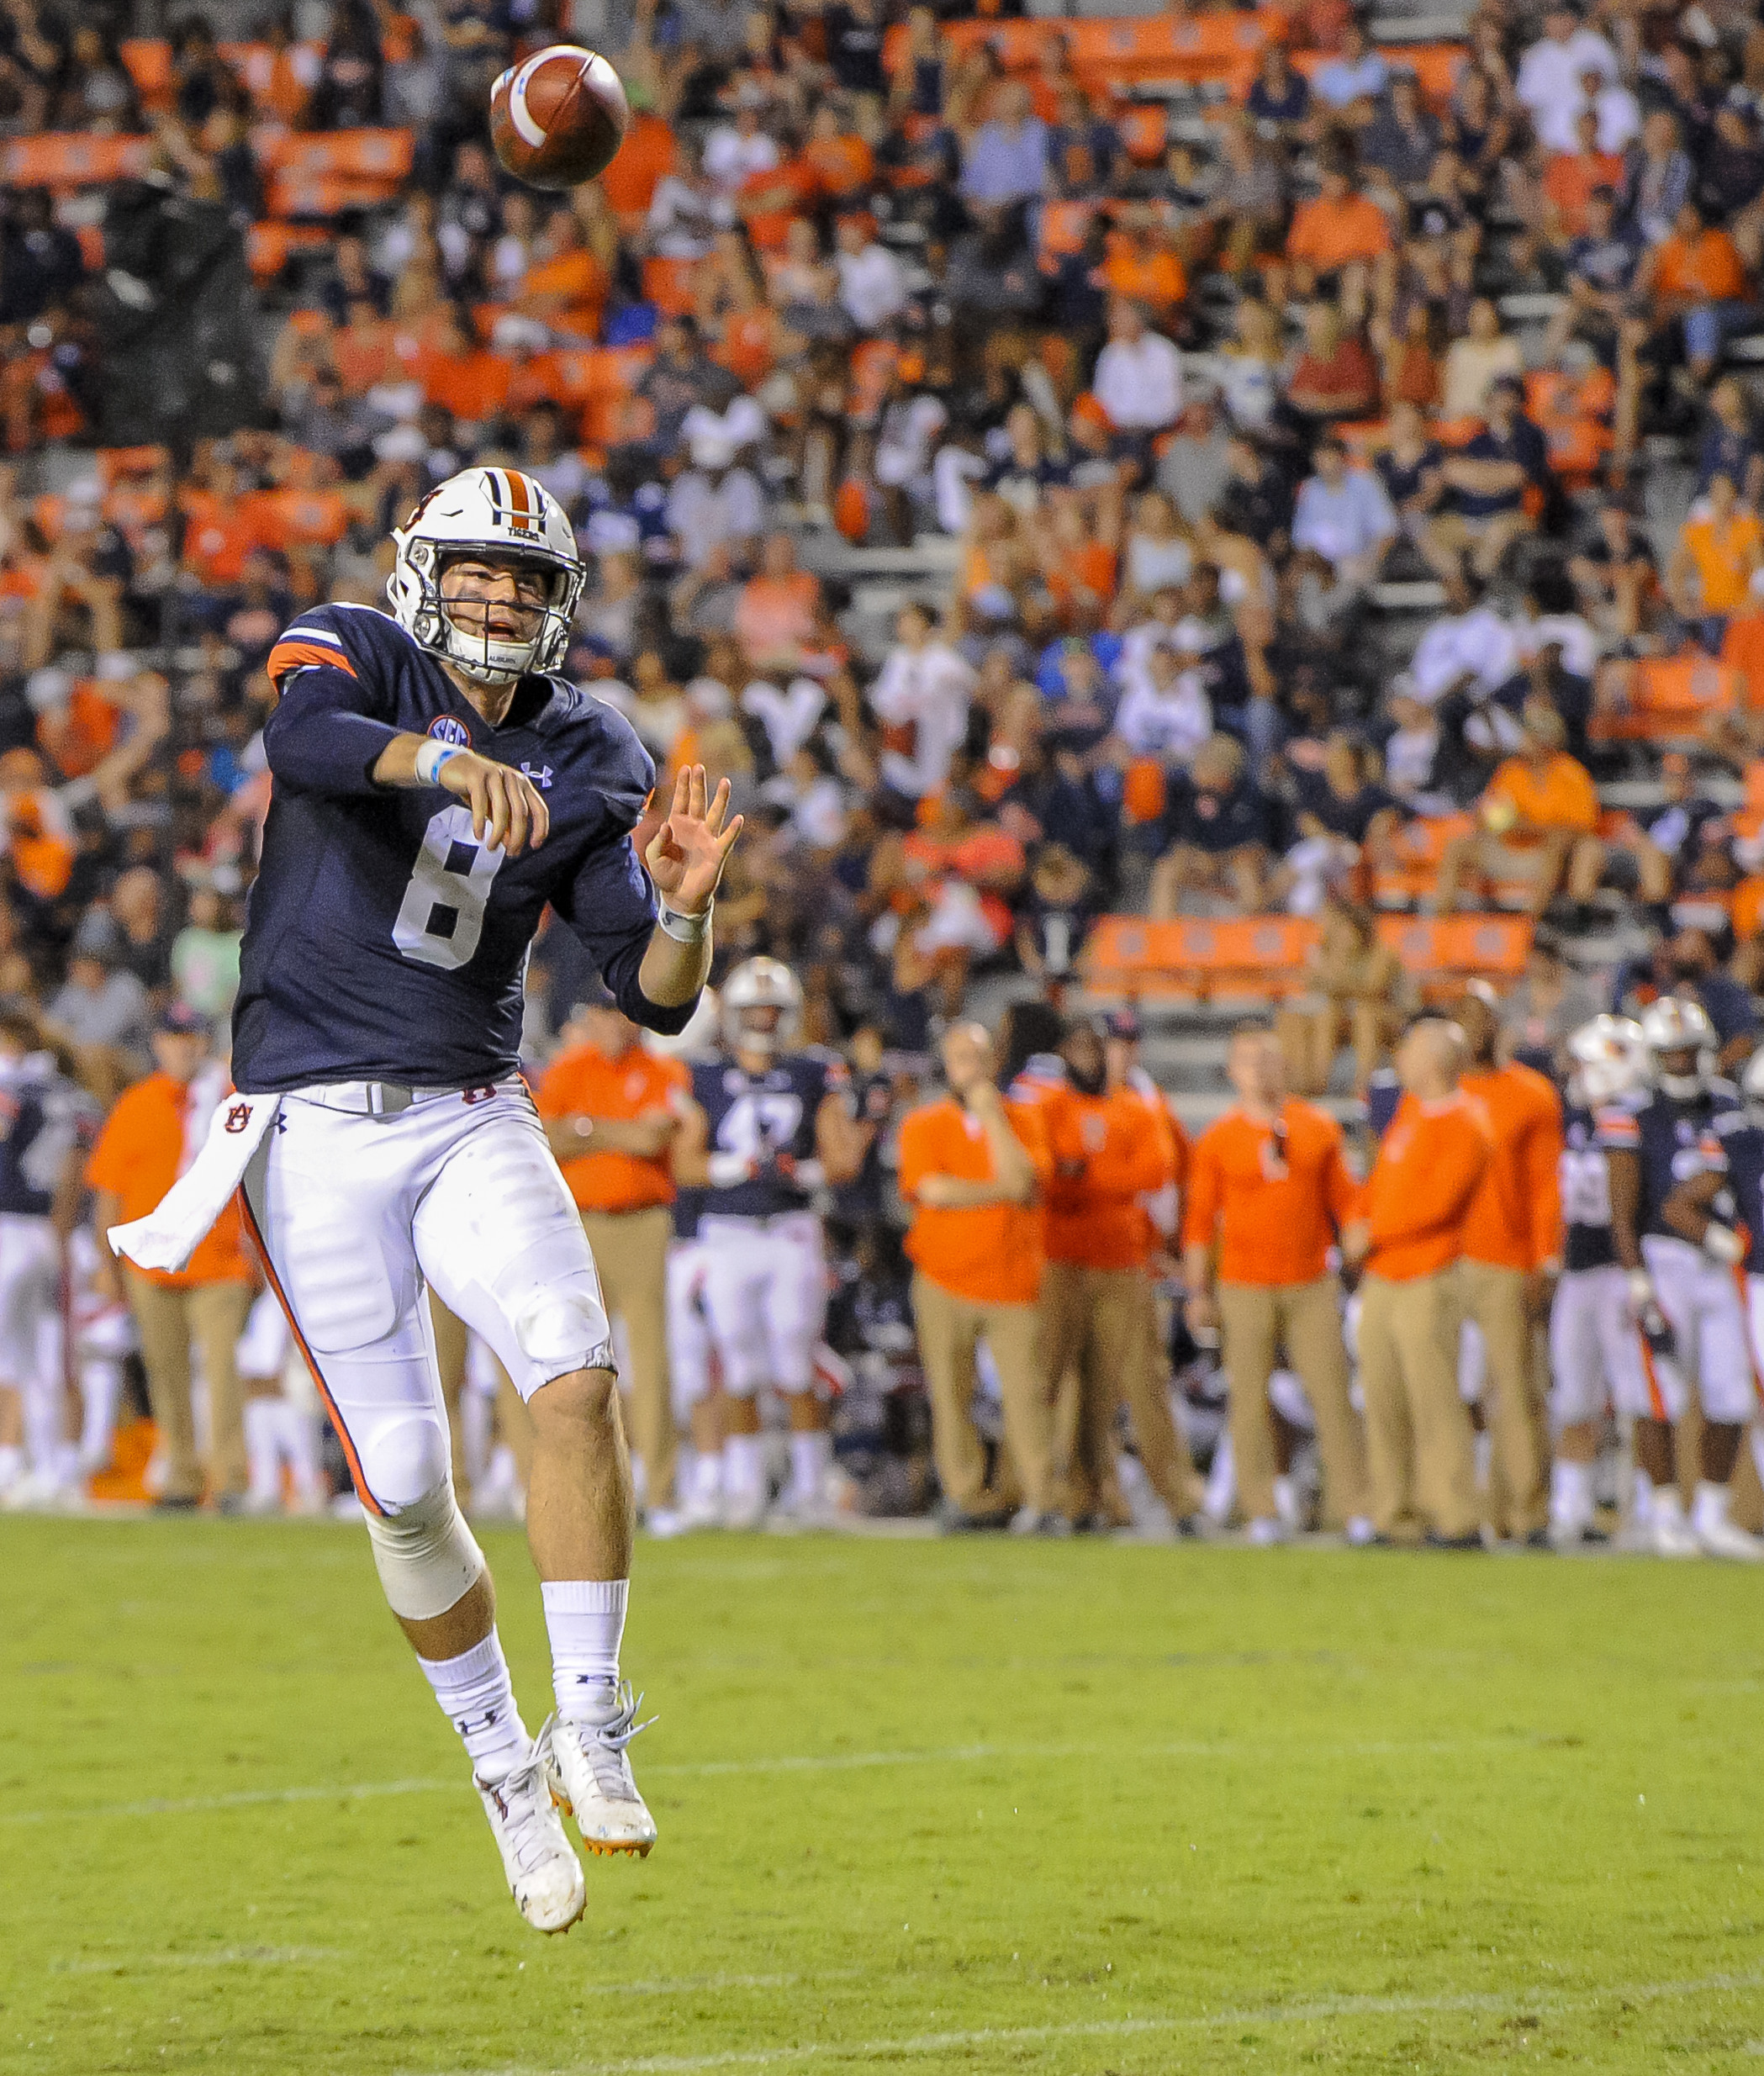 Auburn Tigers quarterback Jarrett Stidham (8) throws a touchdown pass during the second half of Saturday's game, at Jordan Hare Stadium in Auburn AL. Daily Mountain Eagle -  Jeff Johnsey